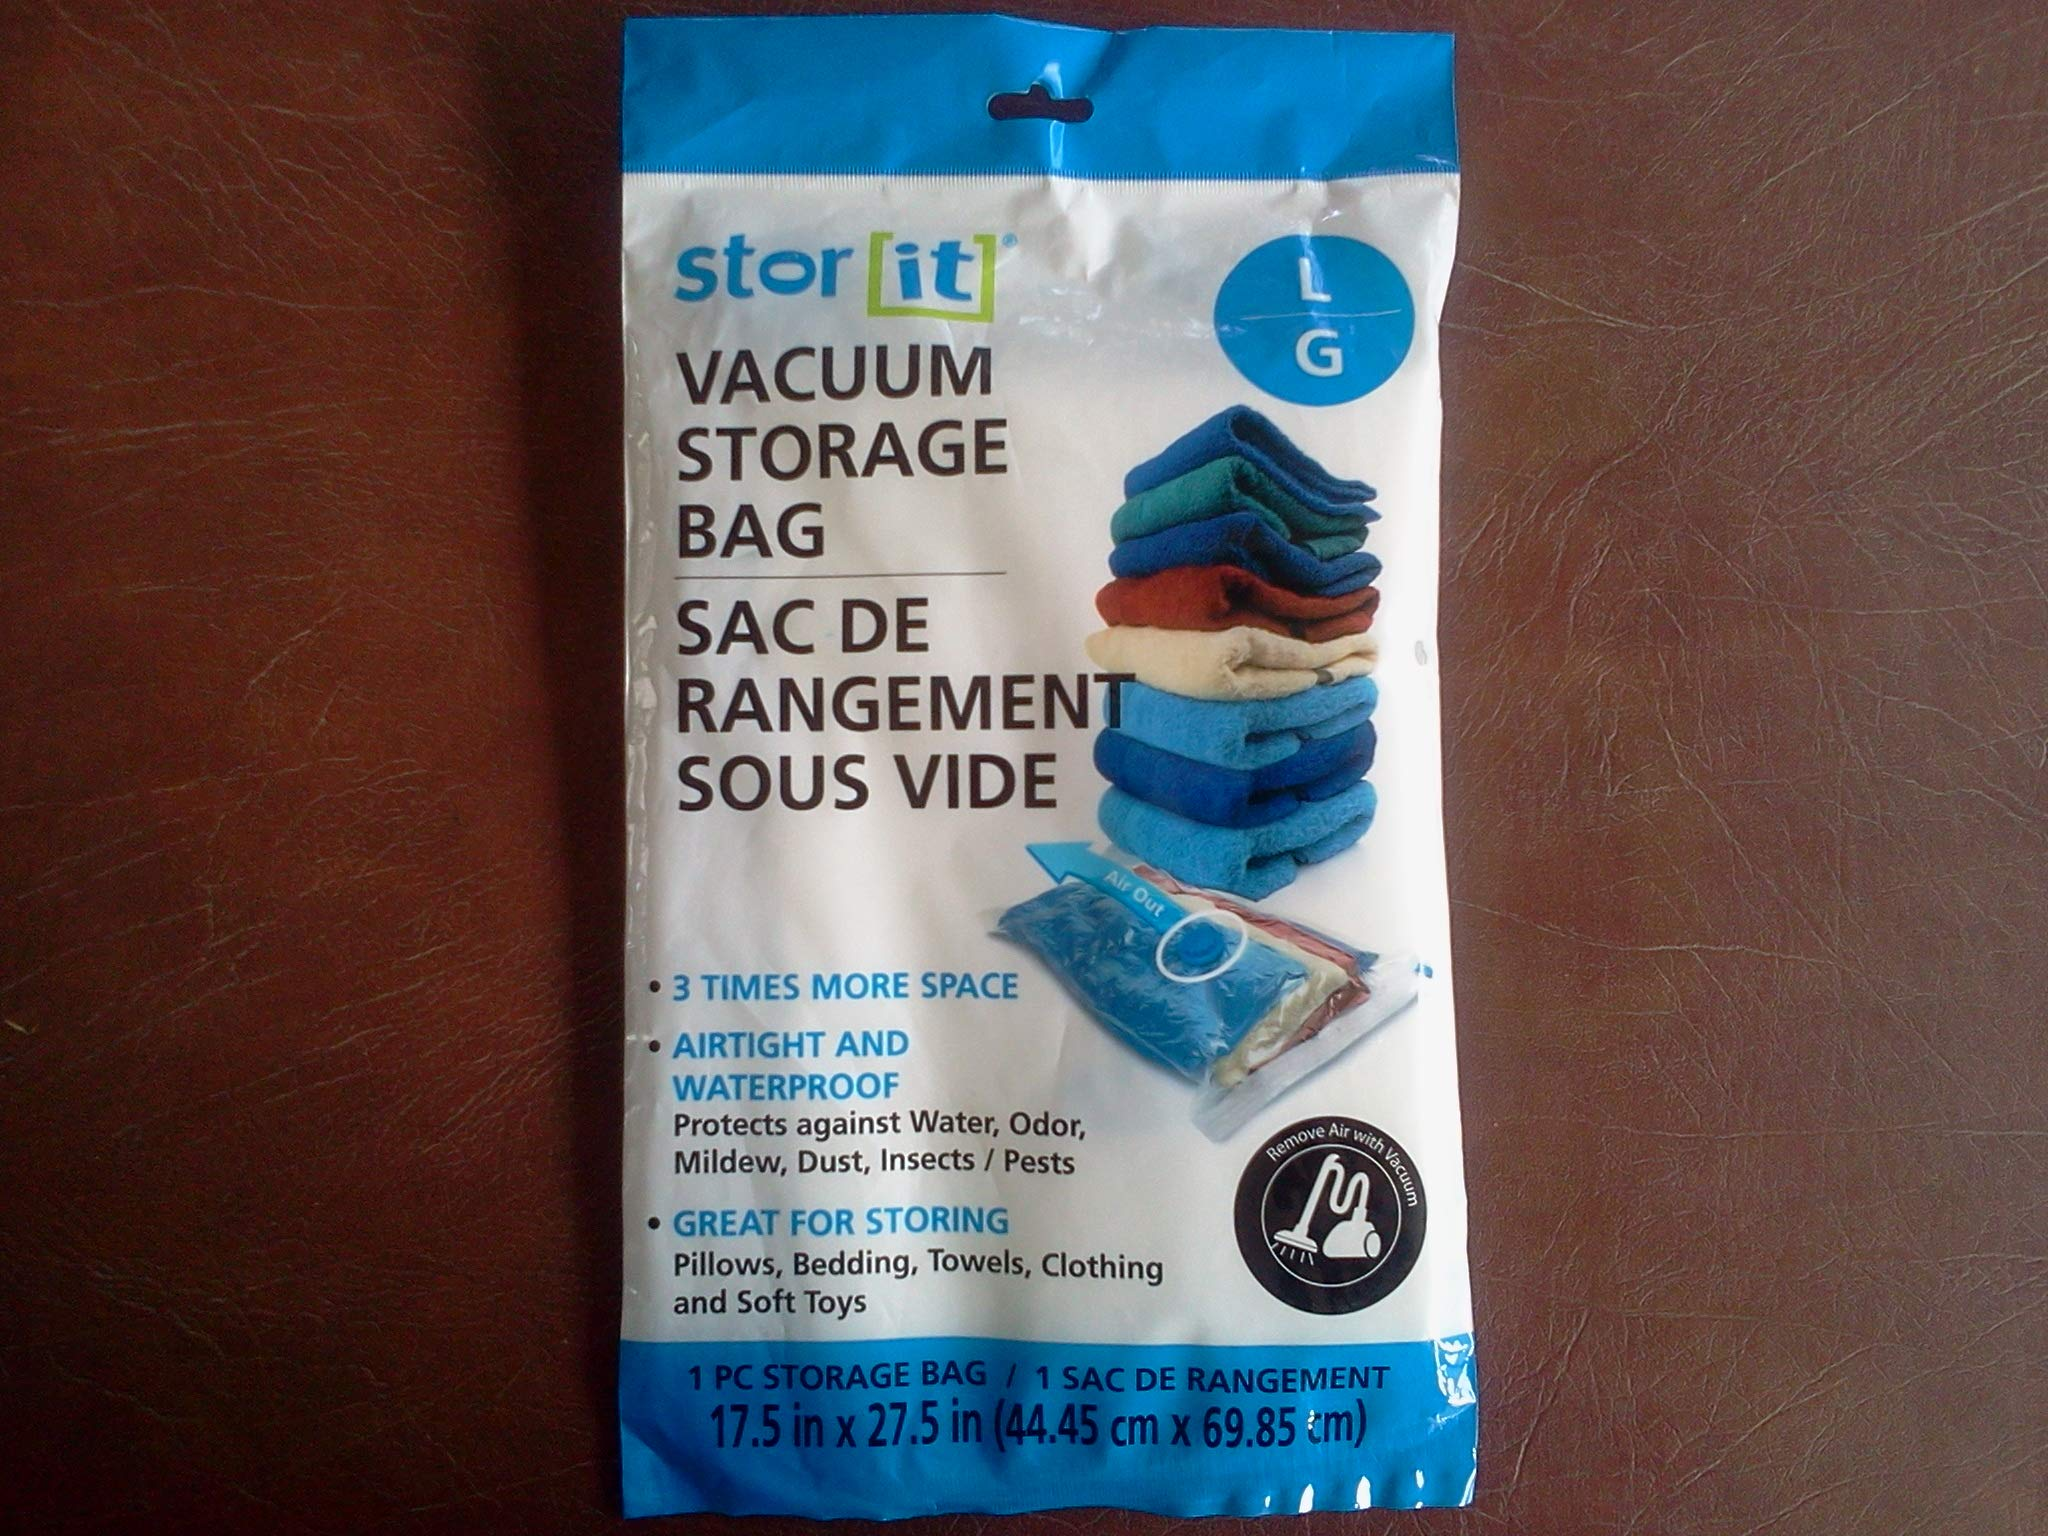 Stor It Vacuum Storage Bag- Large for 3 Times More Space